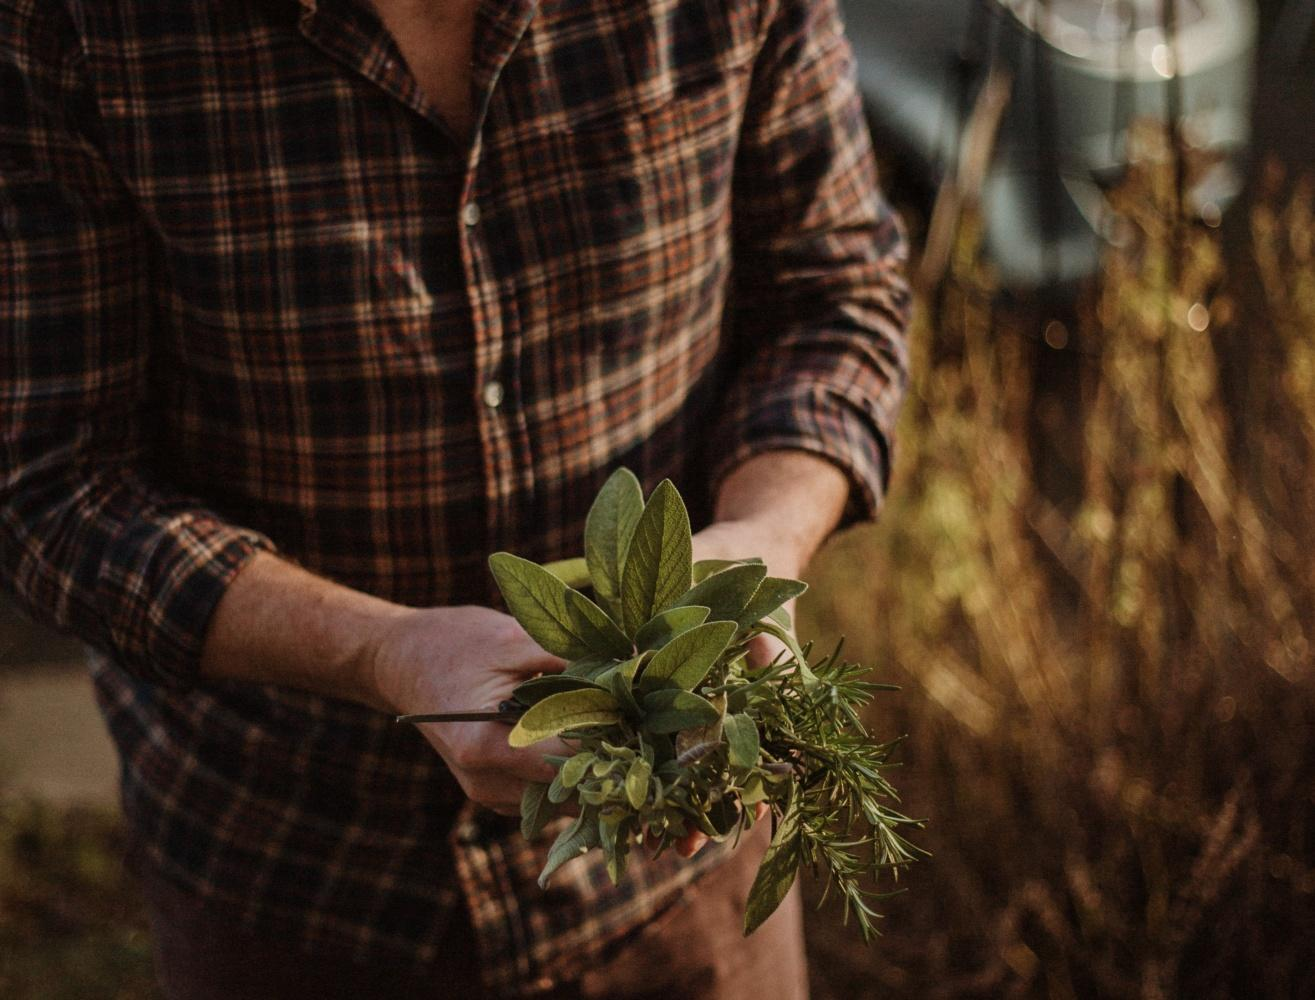 A person in a checked button down shirt holds a cluster of herbs in their hands. Grass is in the background and the light is hazy, like sunset. Be inspired to grow your own in a victory garden at home.